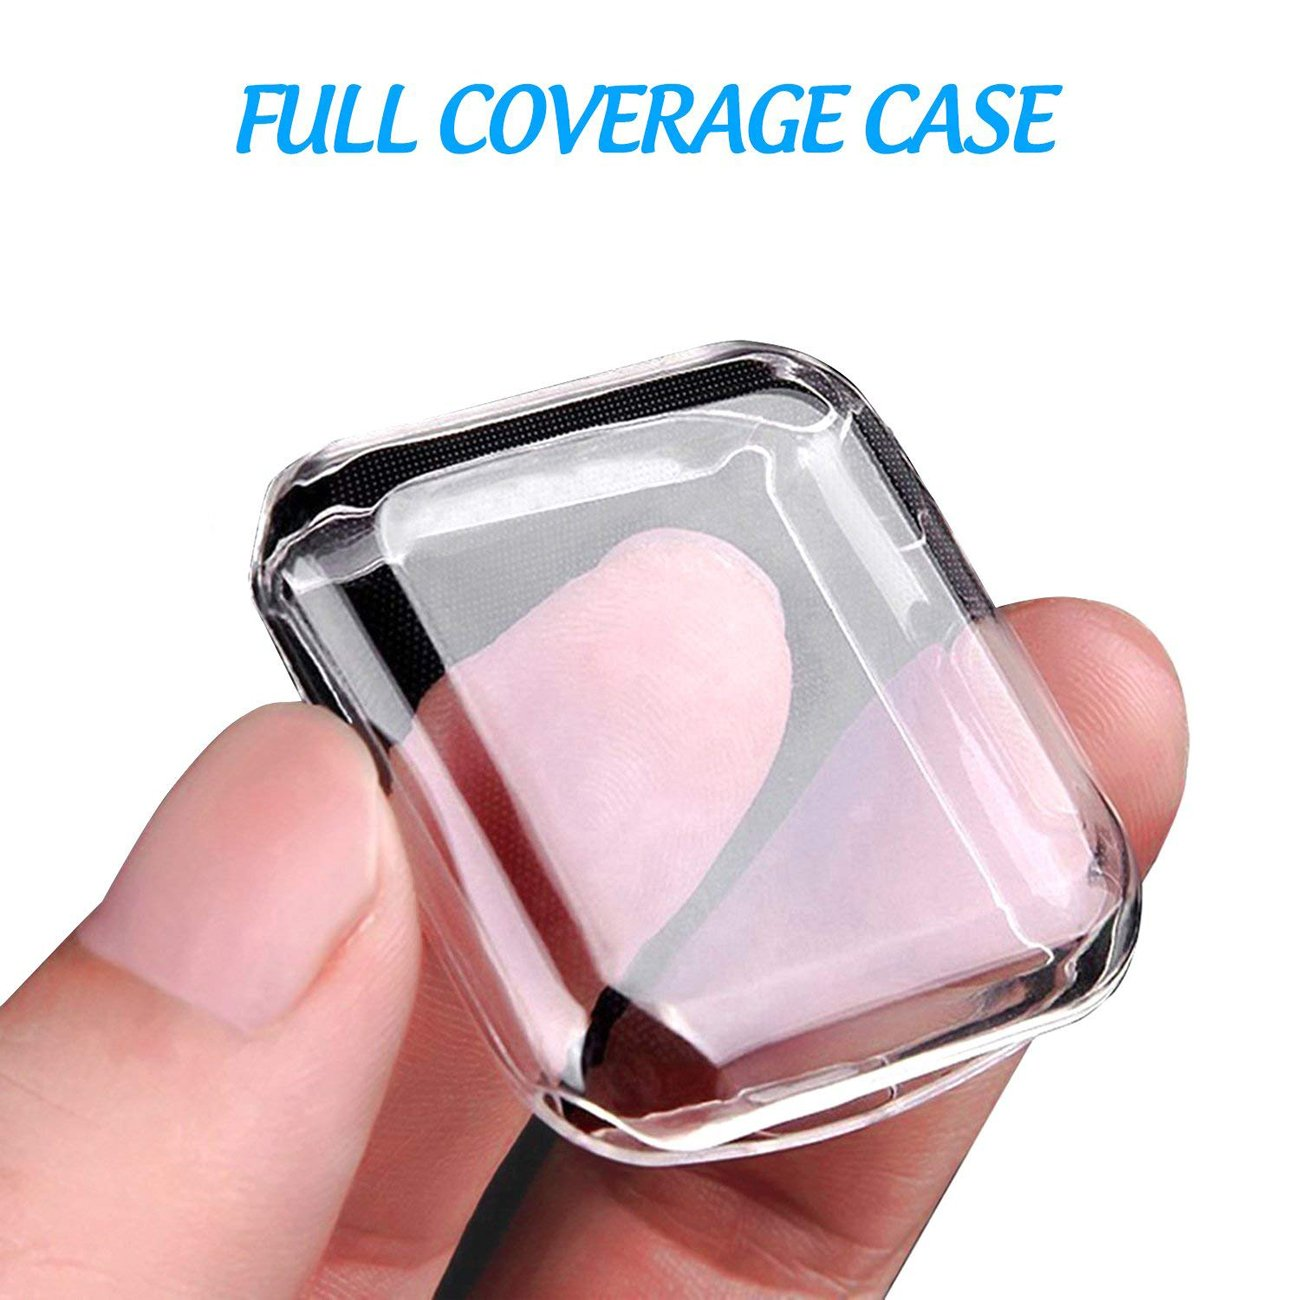 GerTong Soft Silicone TPU Full Cover Case For Fitbit Versa Ultra-thin Soft Plating TPU Protection For Fitbit Versa Protective Shell Frame for Fitbit Versa Smartwatch Clear by GerTong (Image #6)